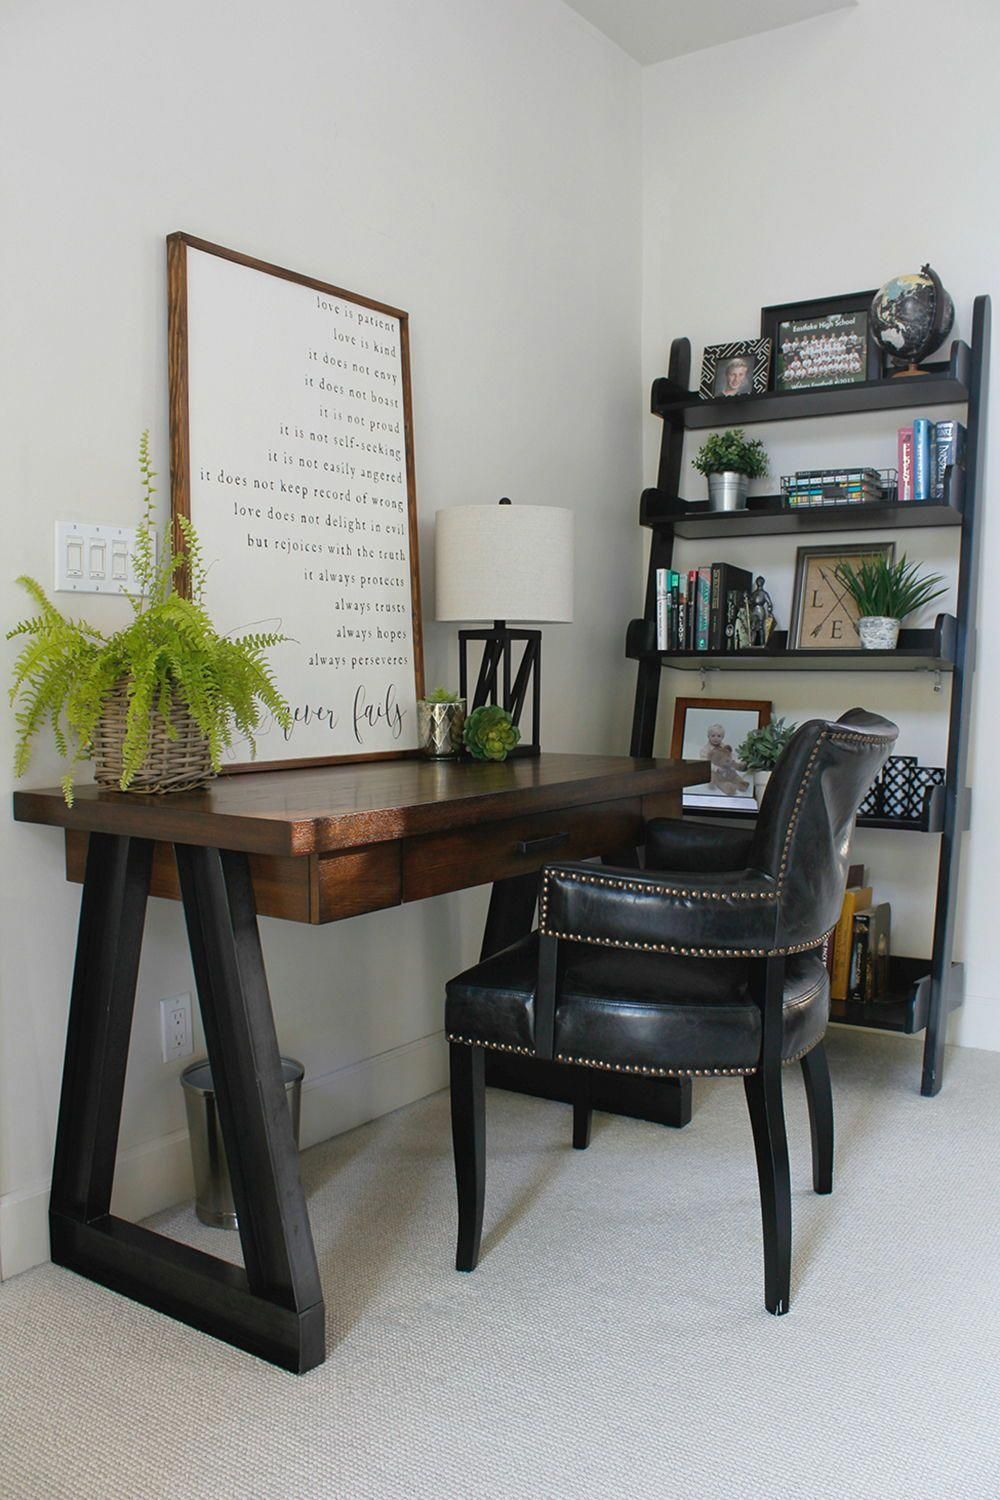 DIY Home Decor Truly Interesting Suggestions. in 2020